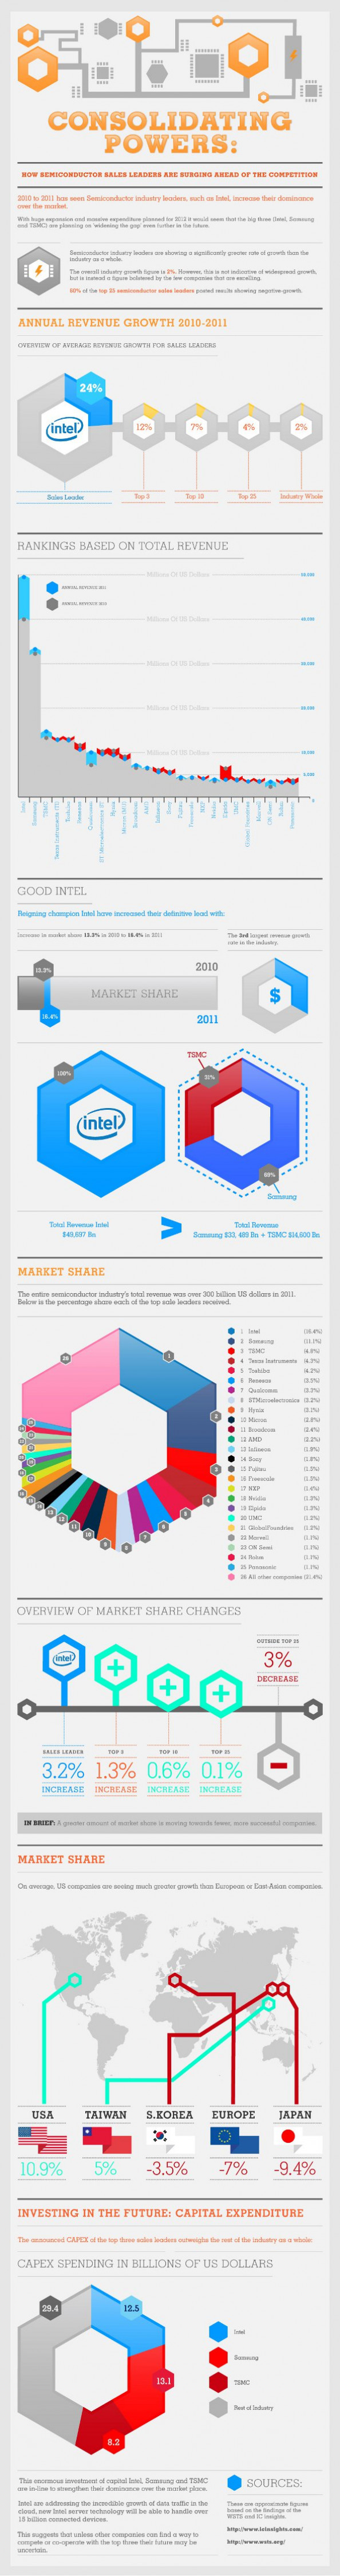 A Look At Intel, Samsung, TSMC and the Semiconductor Industry Infographic